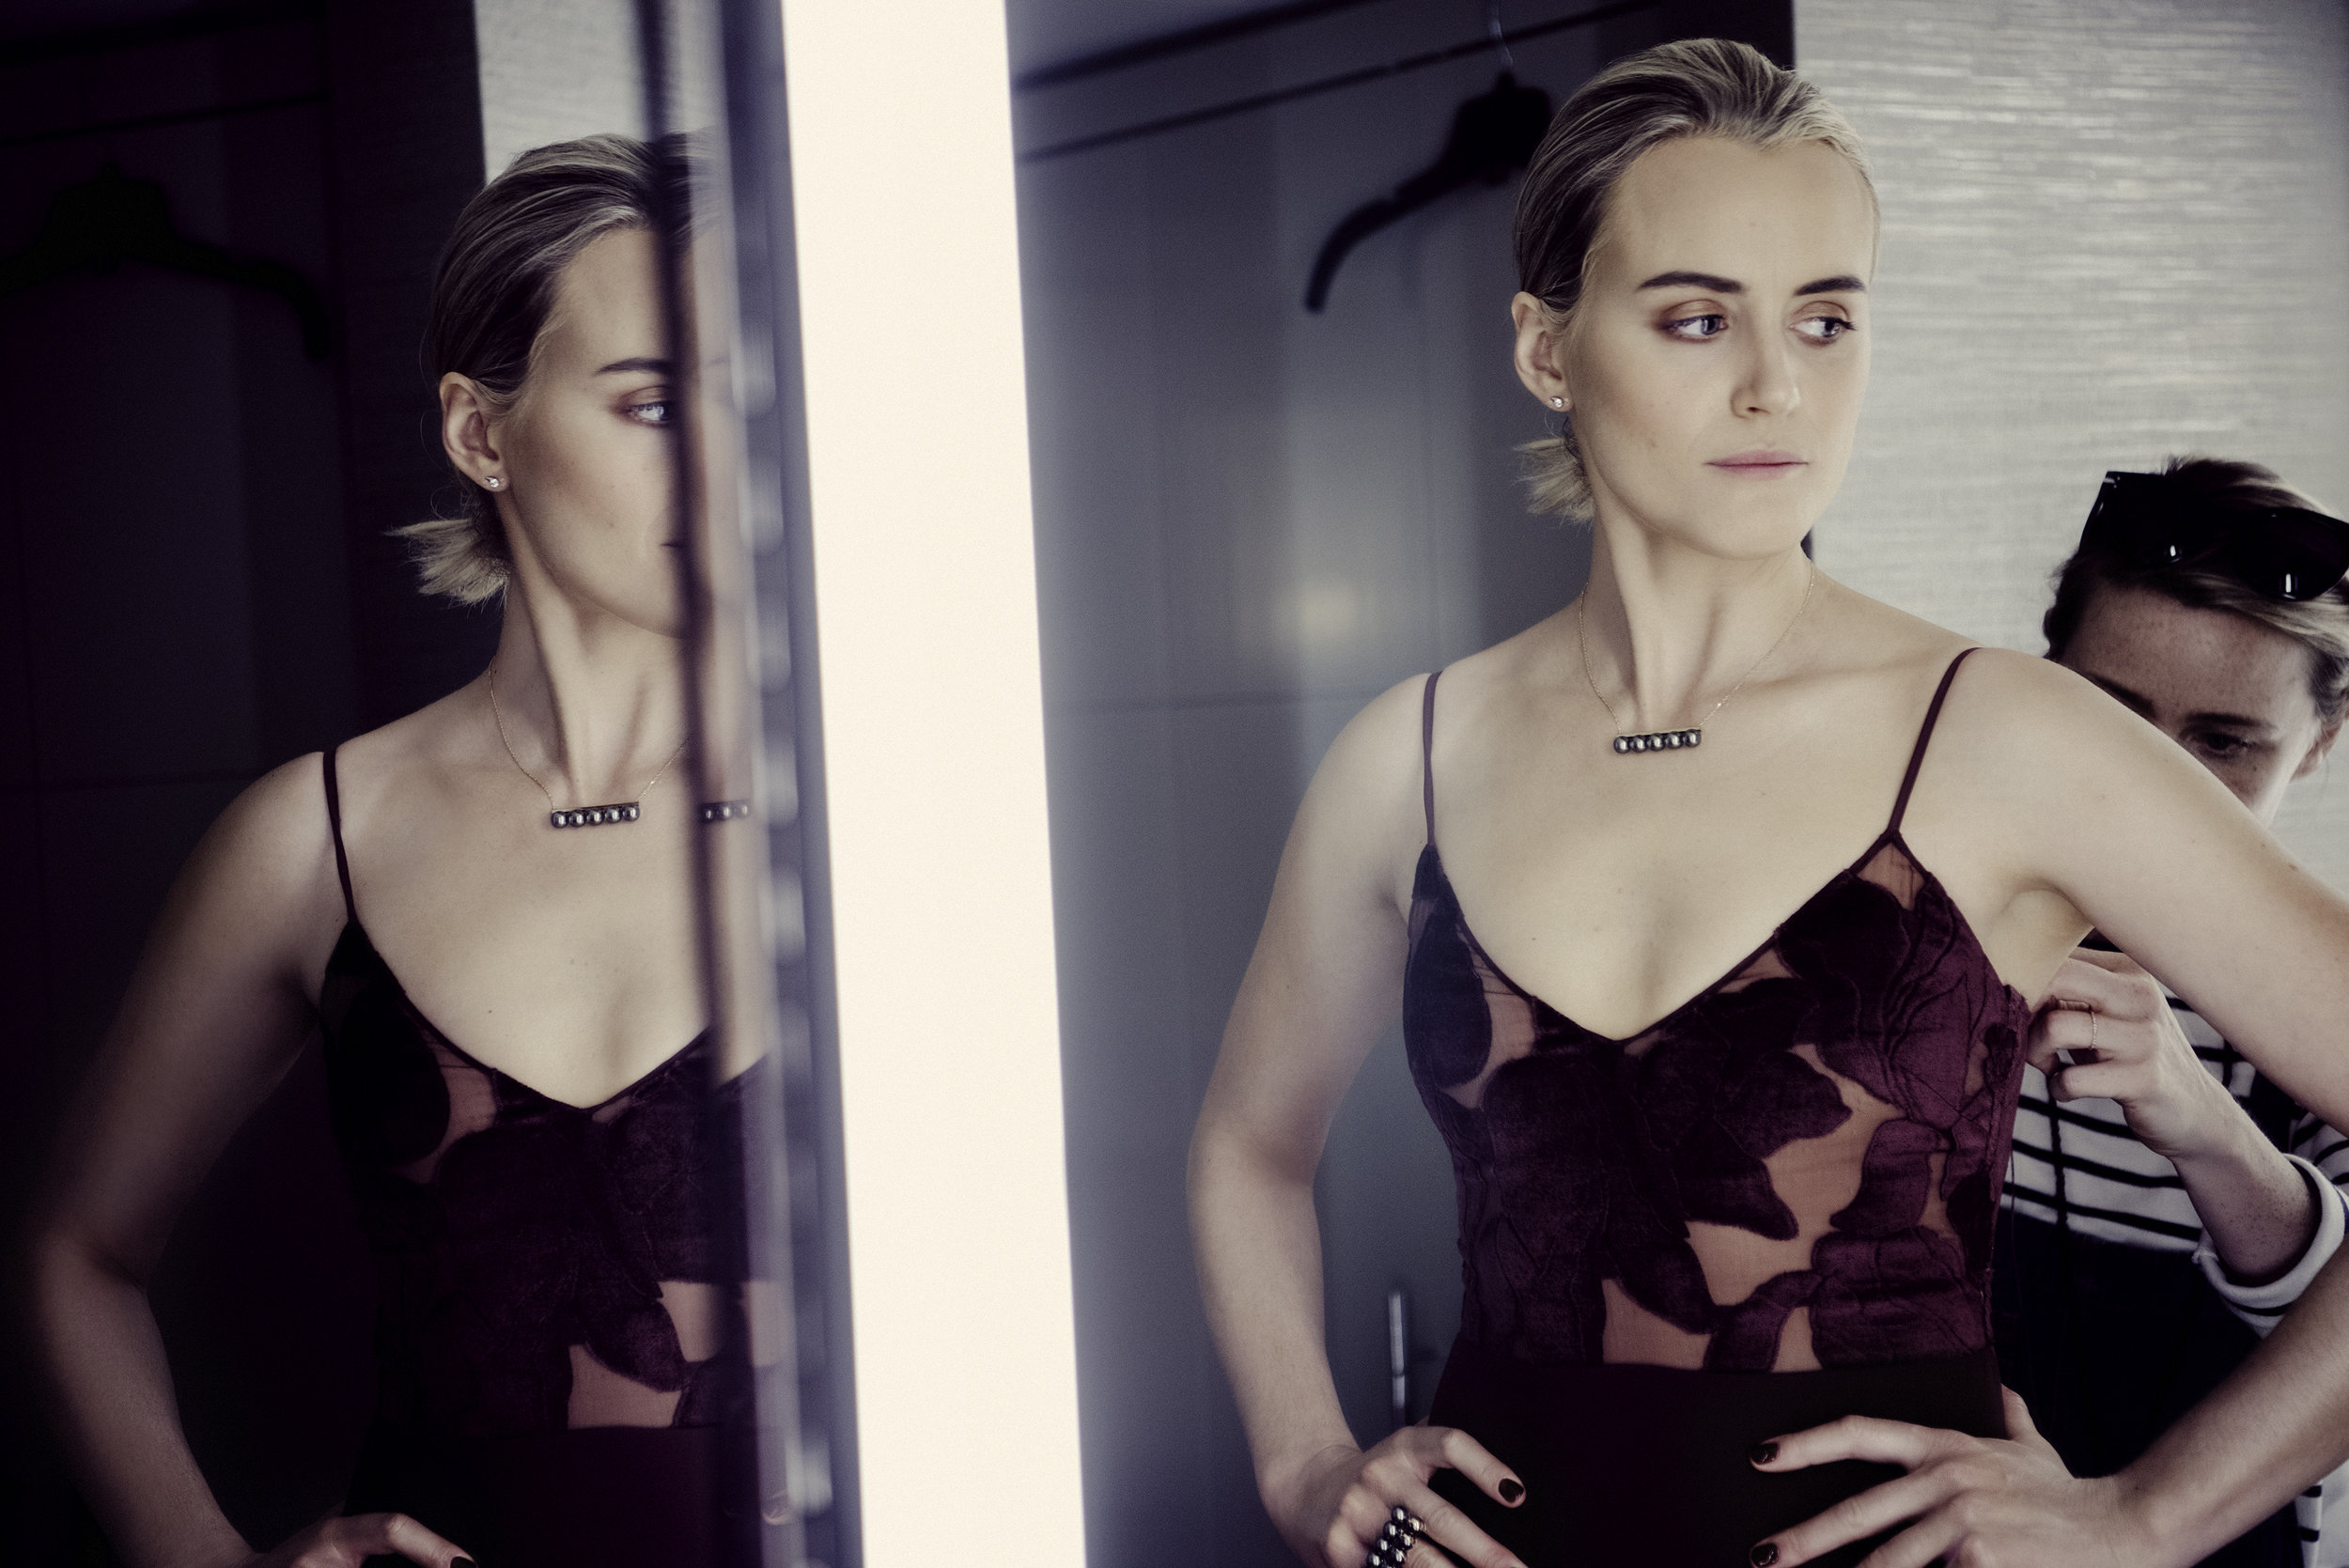 TaylorSchilling_by_AnthonyGoble_3